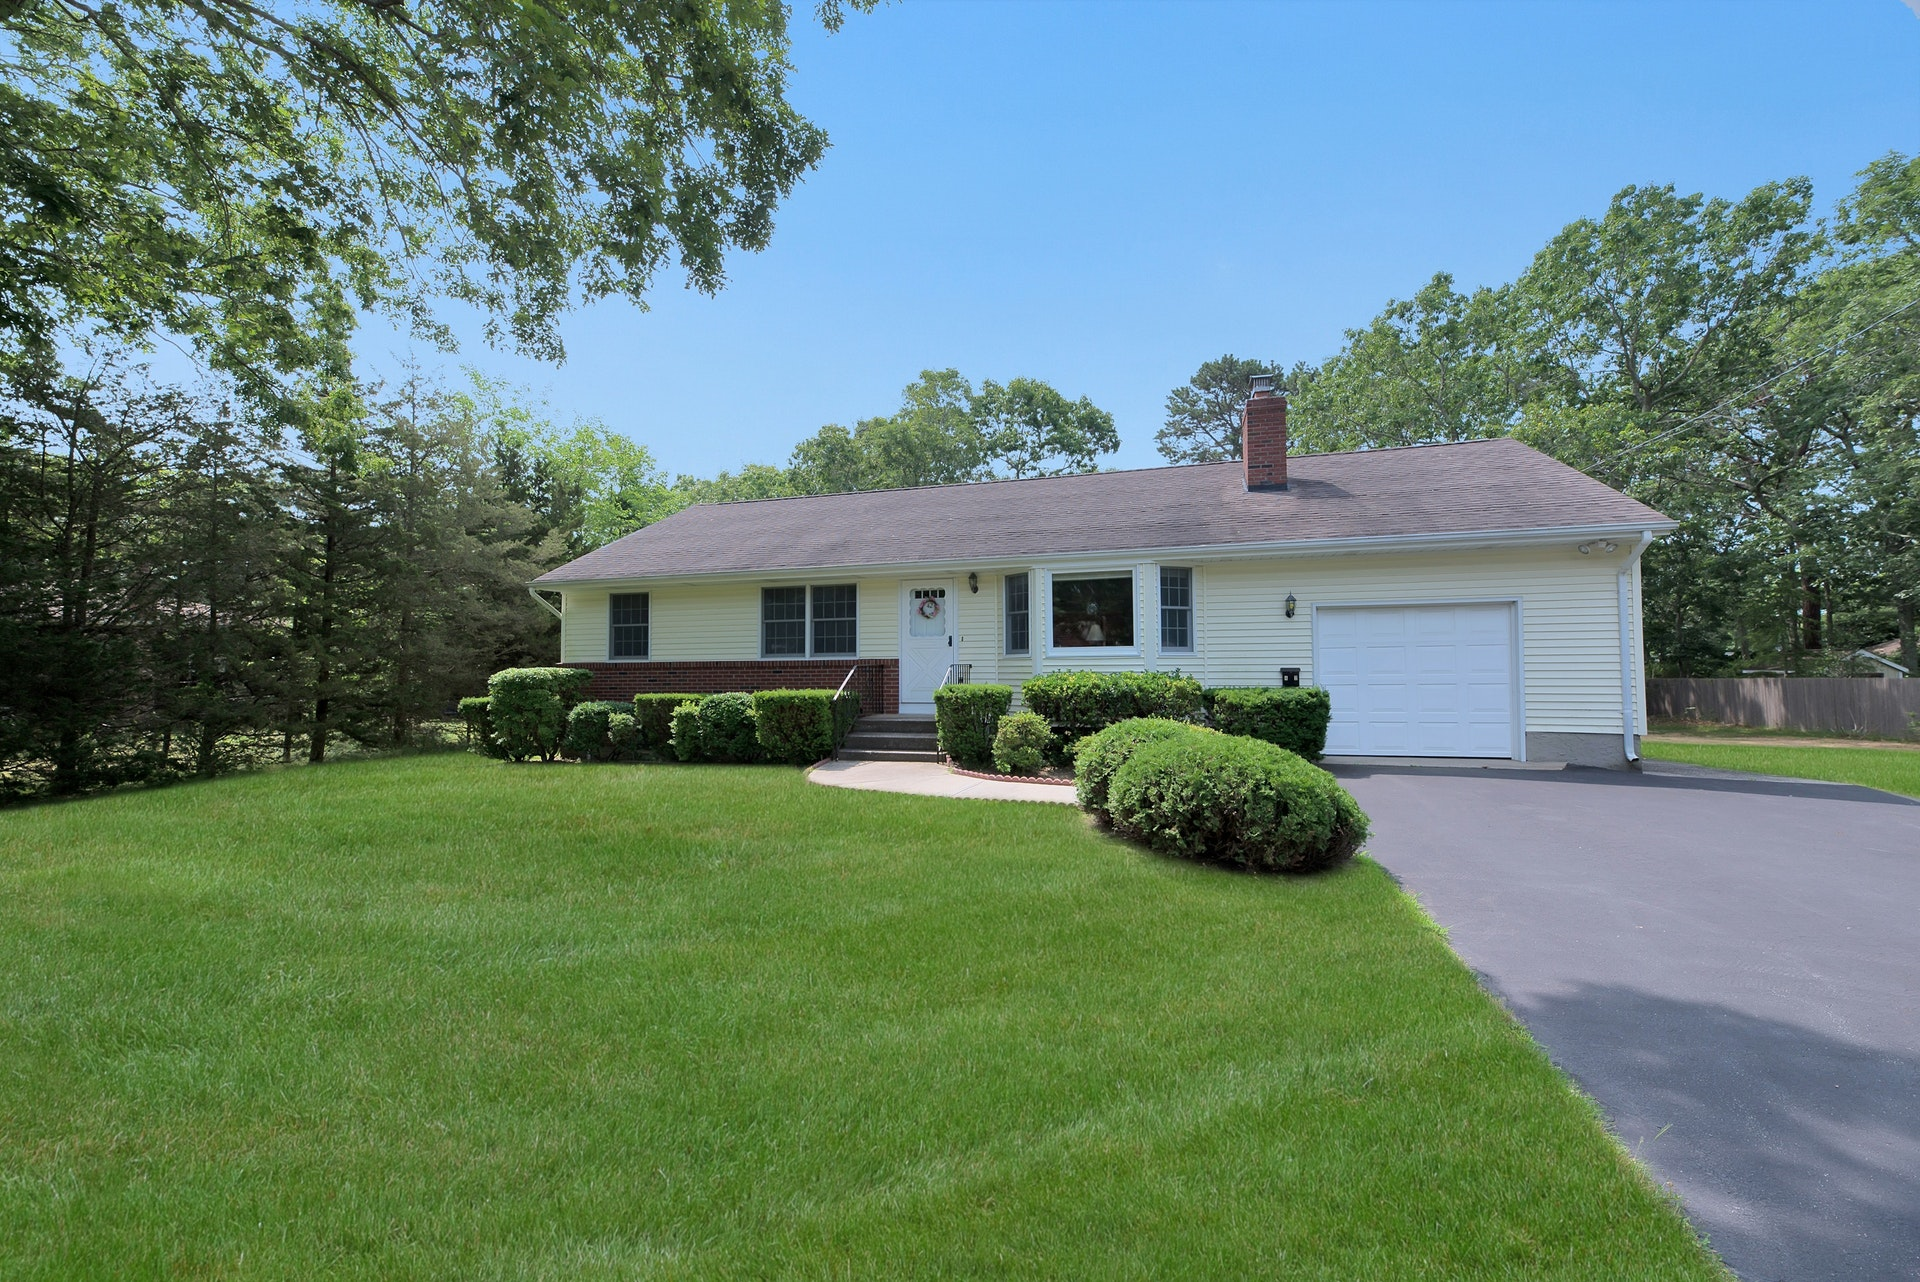 42 Lynncliff Rd - Hampton Bays, New York